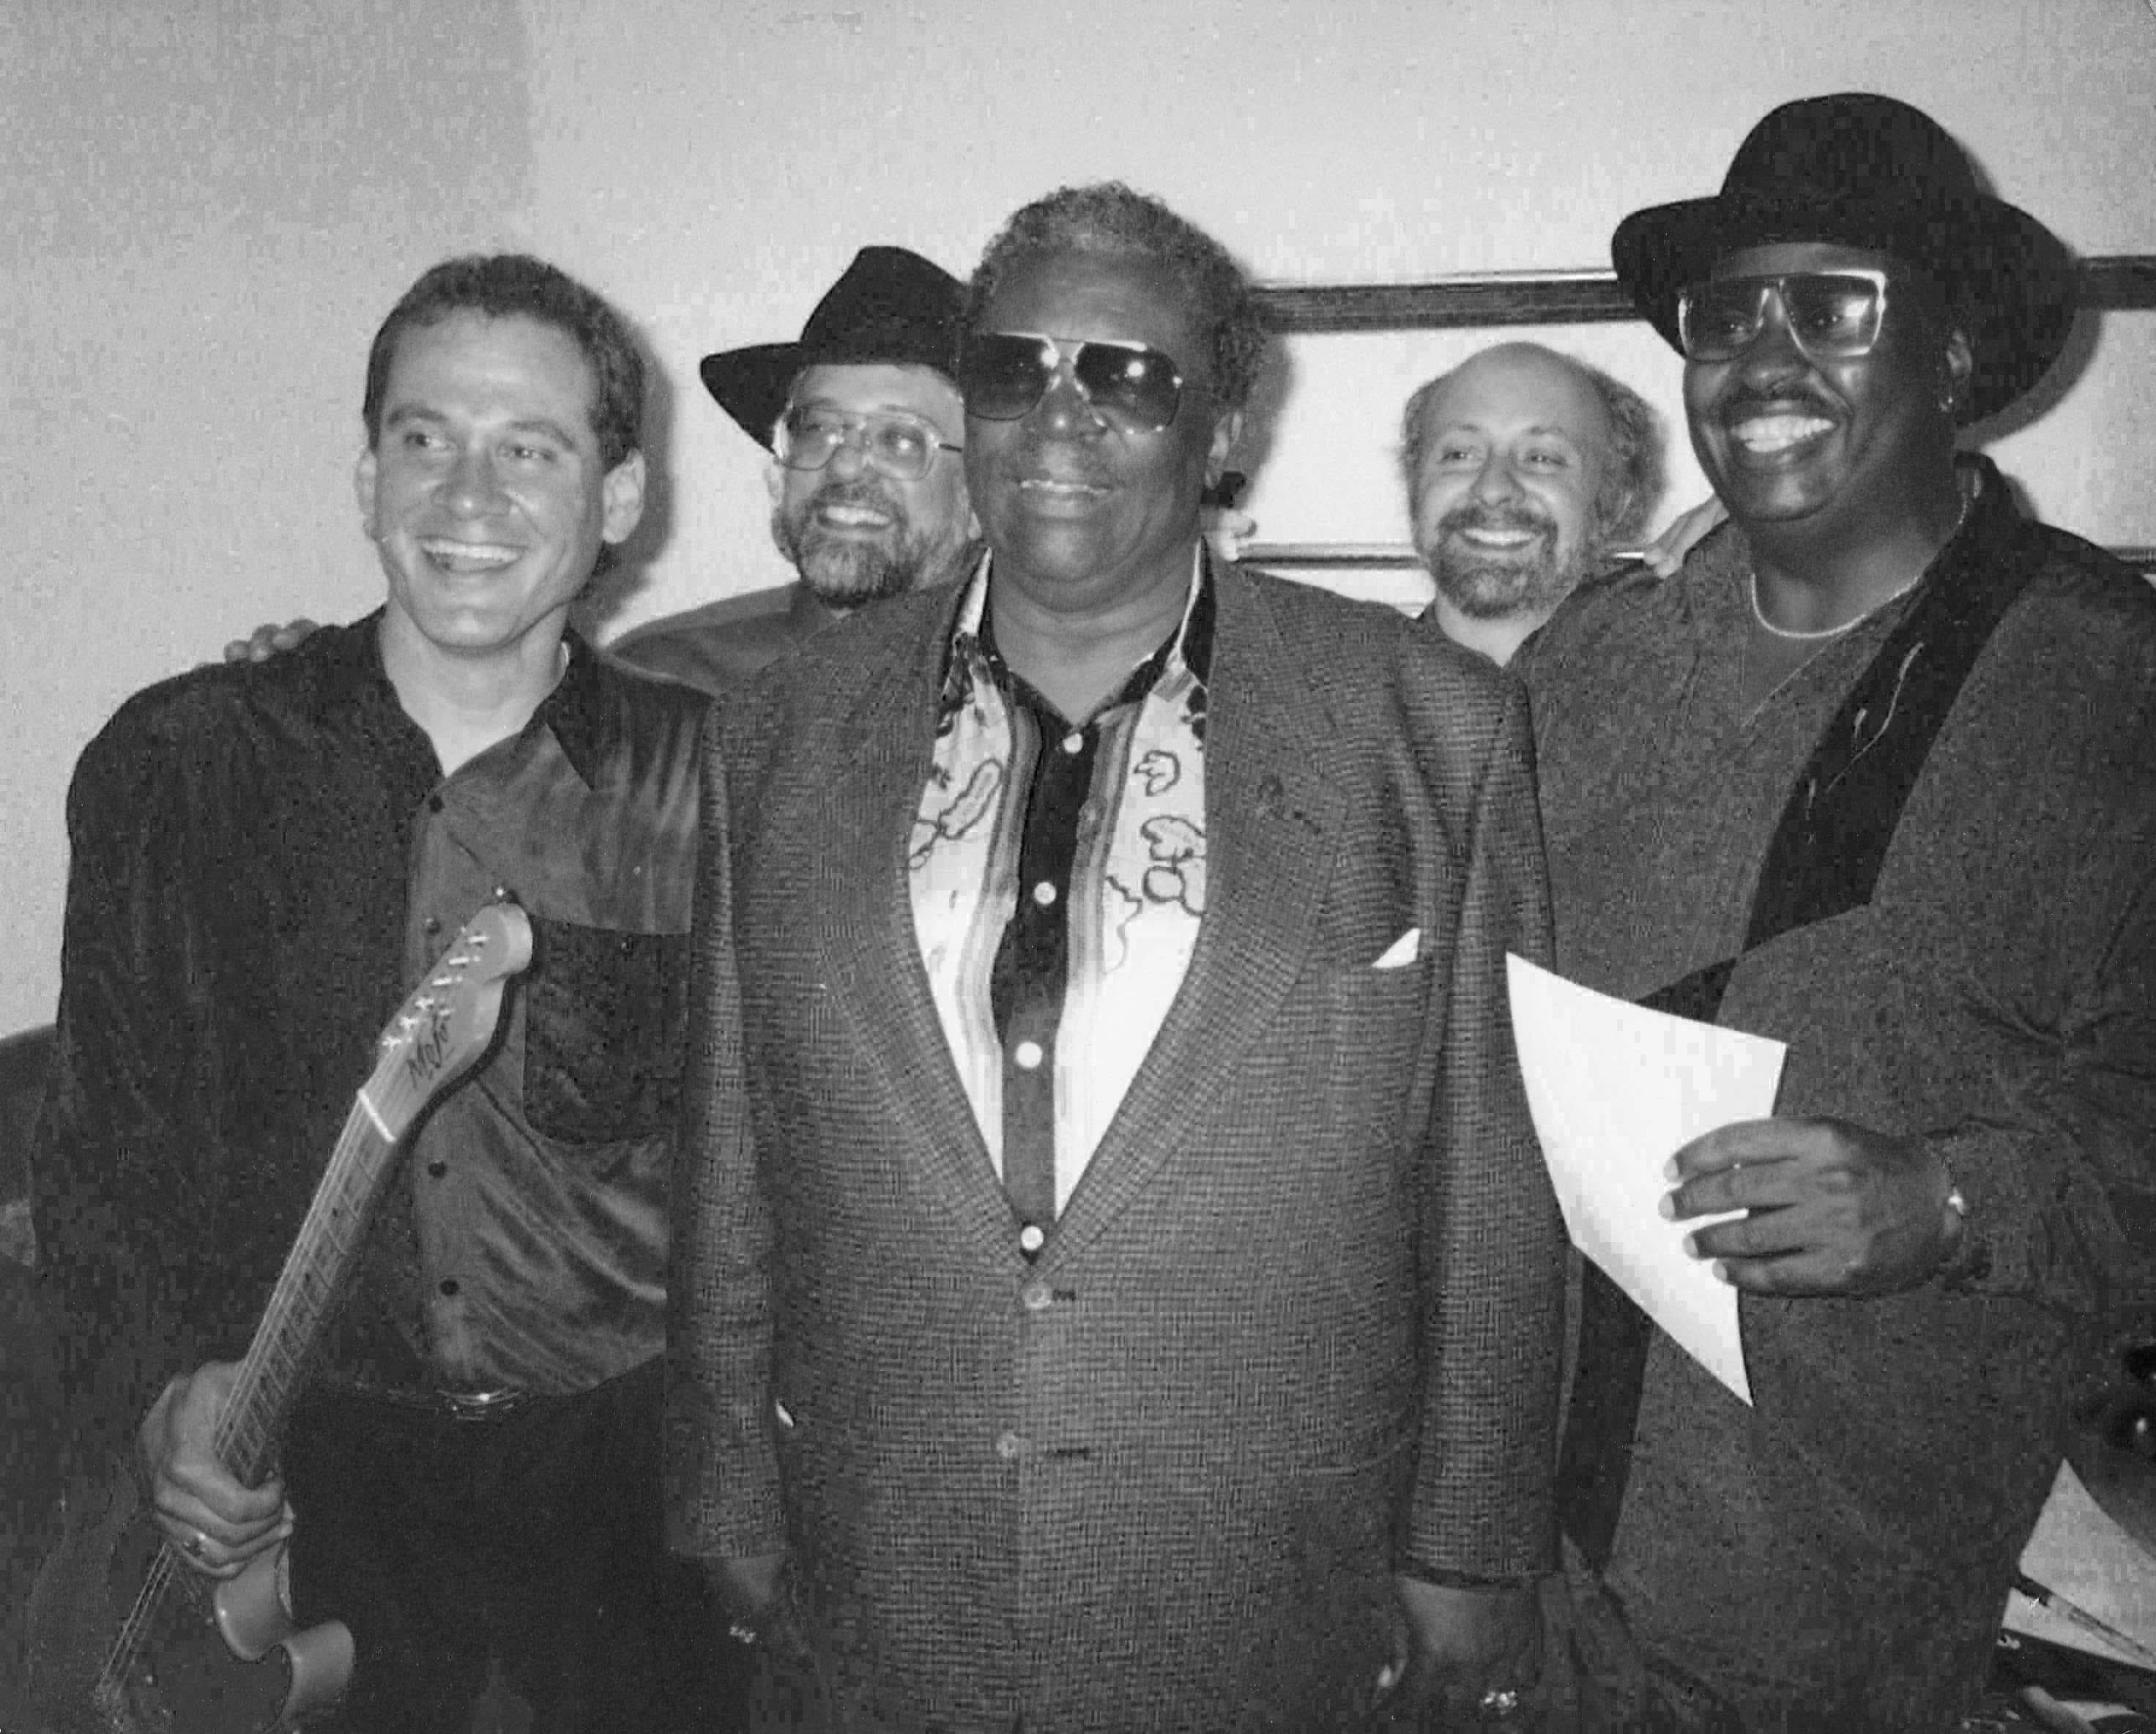 Jerry B. Bowden posting with the late, great B.B. King